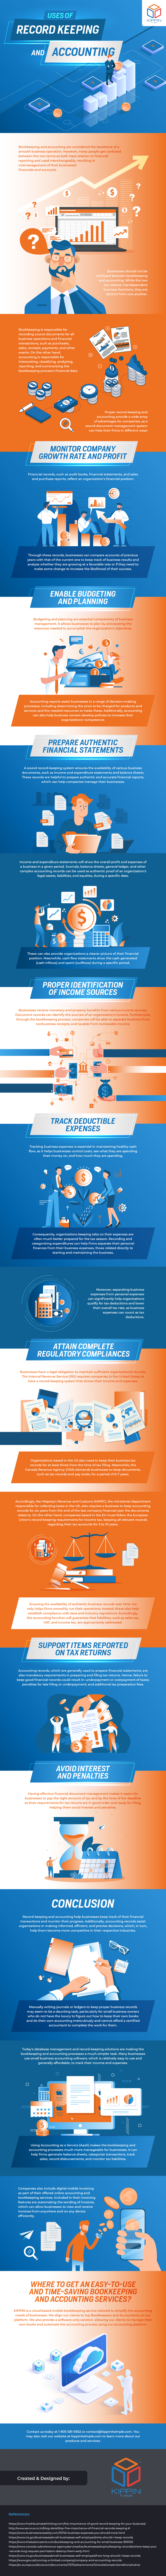 Uses of Record Keeping and Accounting – Infographic